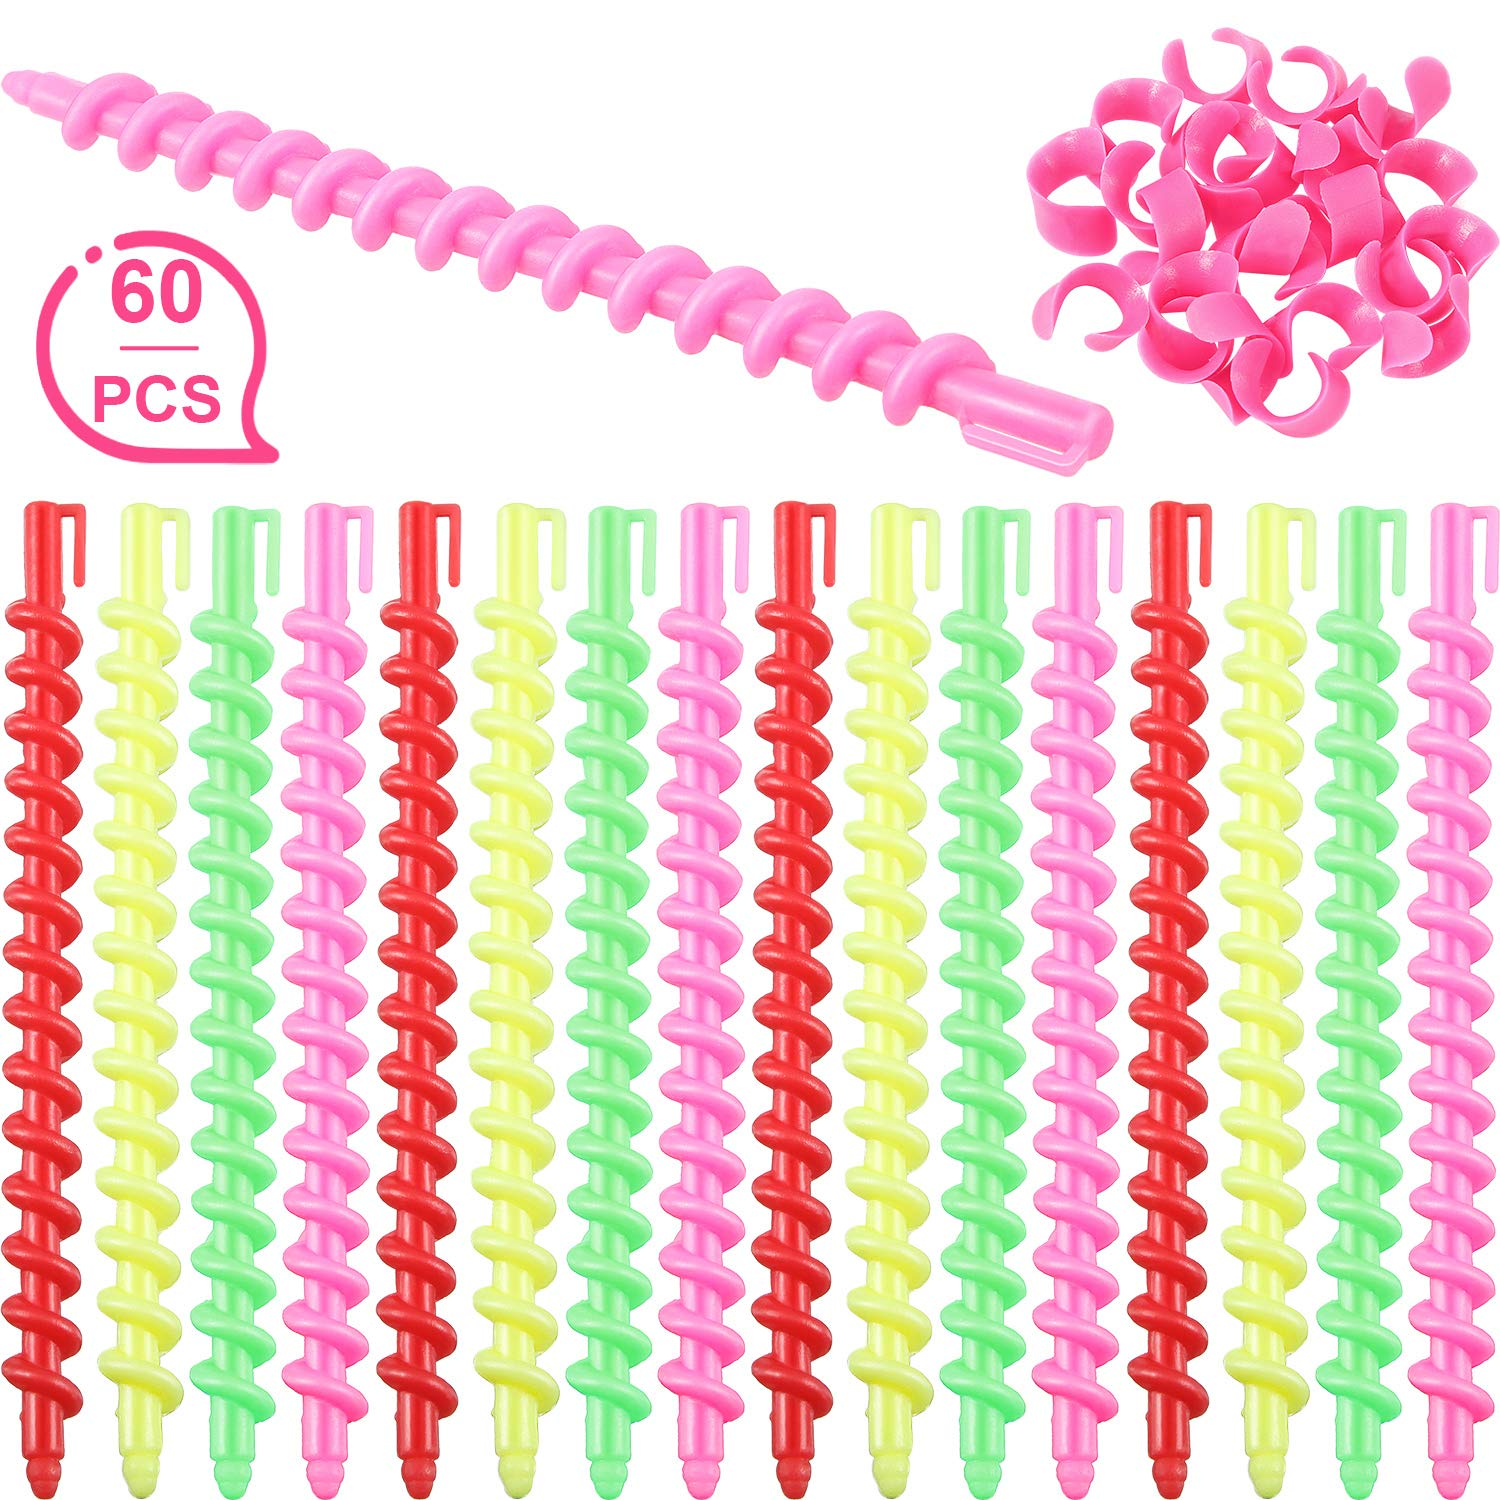 60 Pieces Plastic Spiral Hair Perm Rod Spiral Rod Barber Hairdressing Hair Rollers Salon Tools for Women and Girls by Mudder